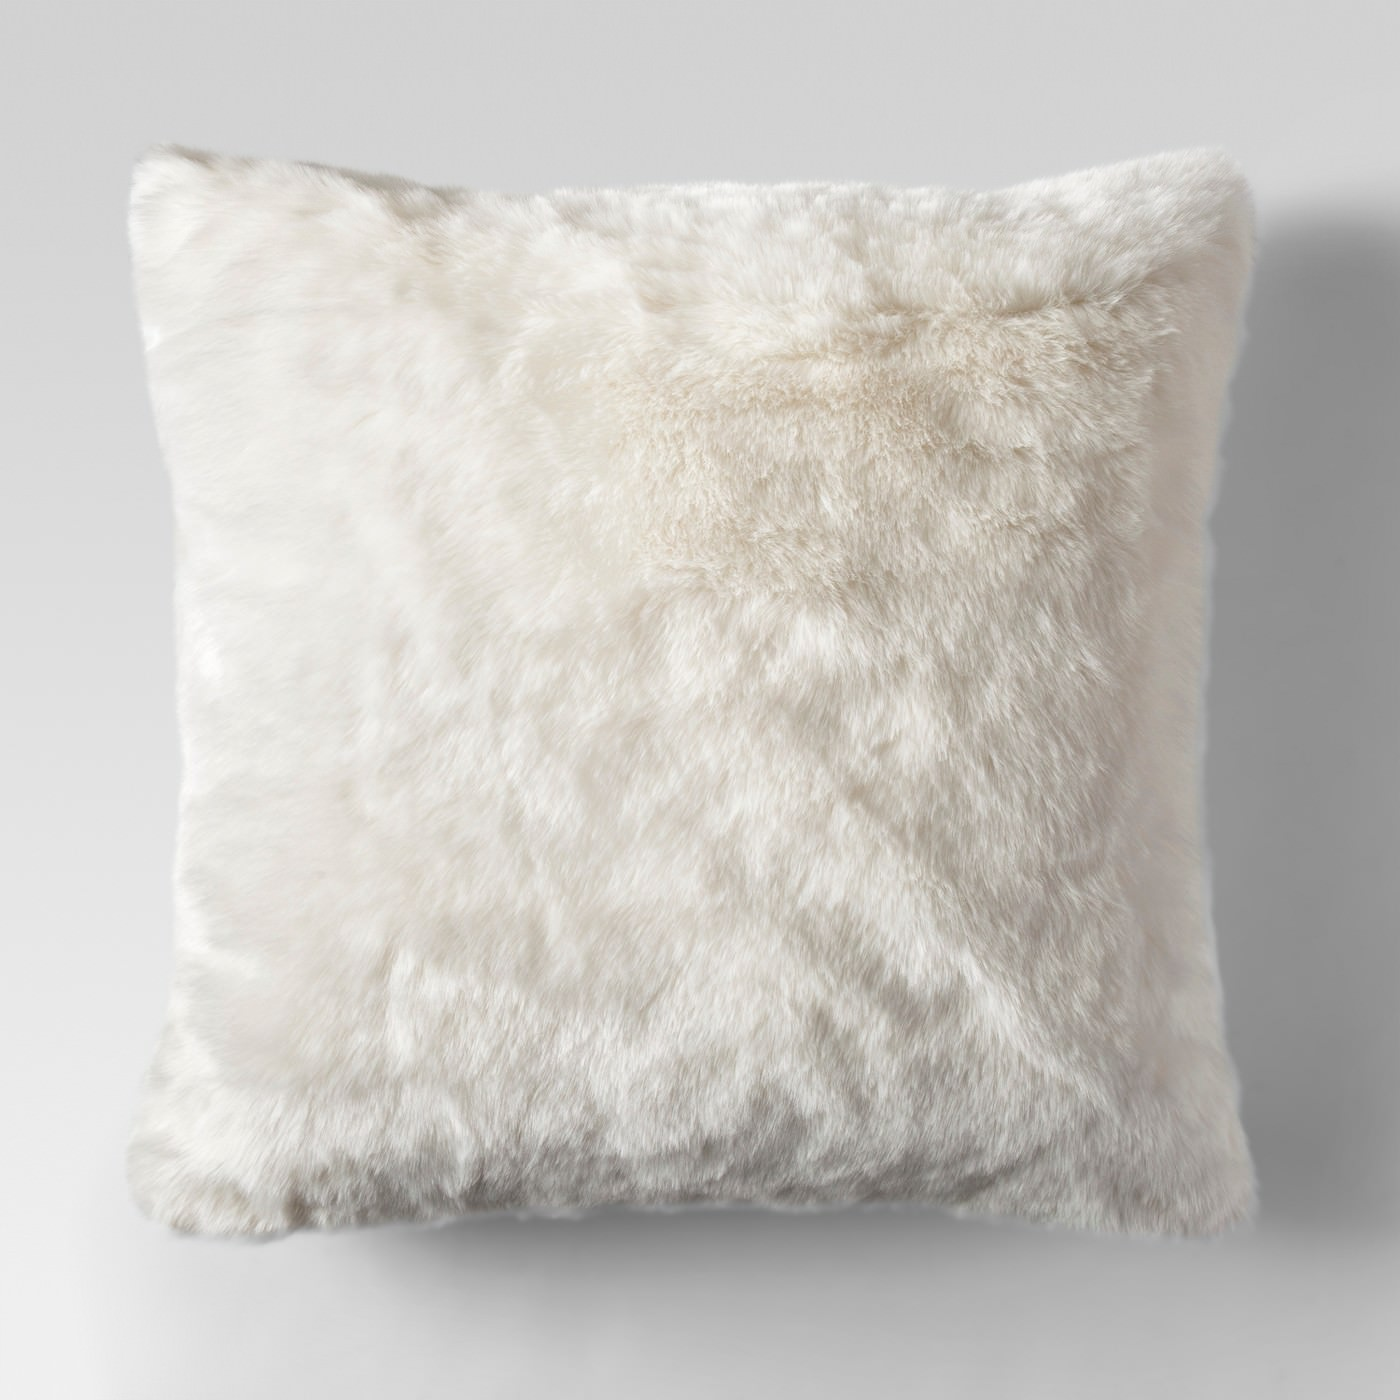 Winter Pillows for a cute and affordable Farmhouse Look